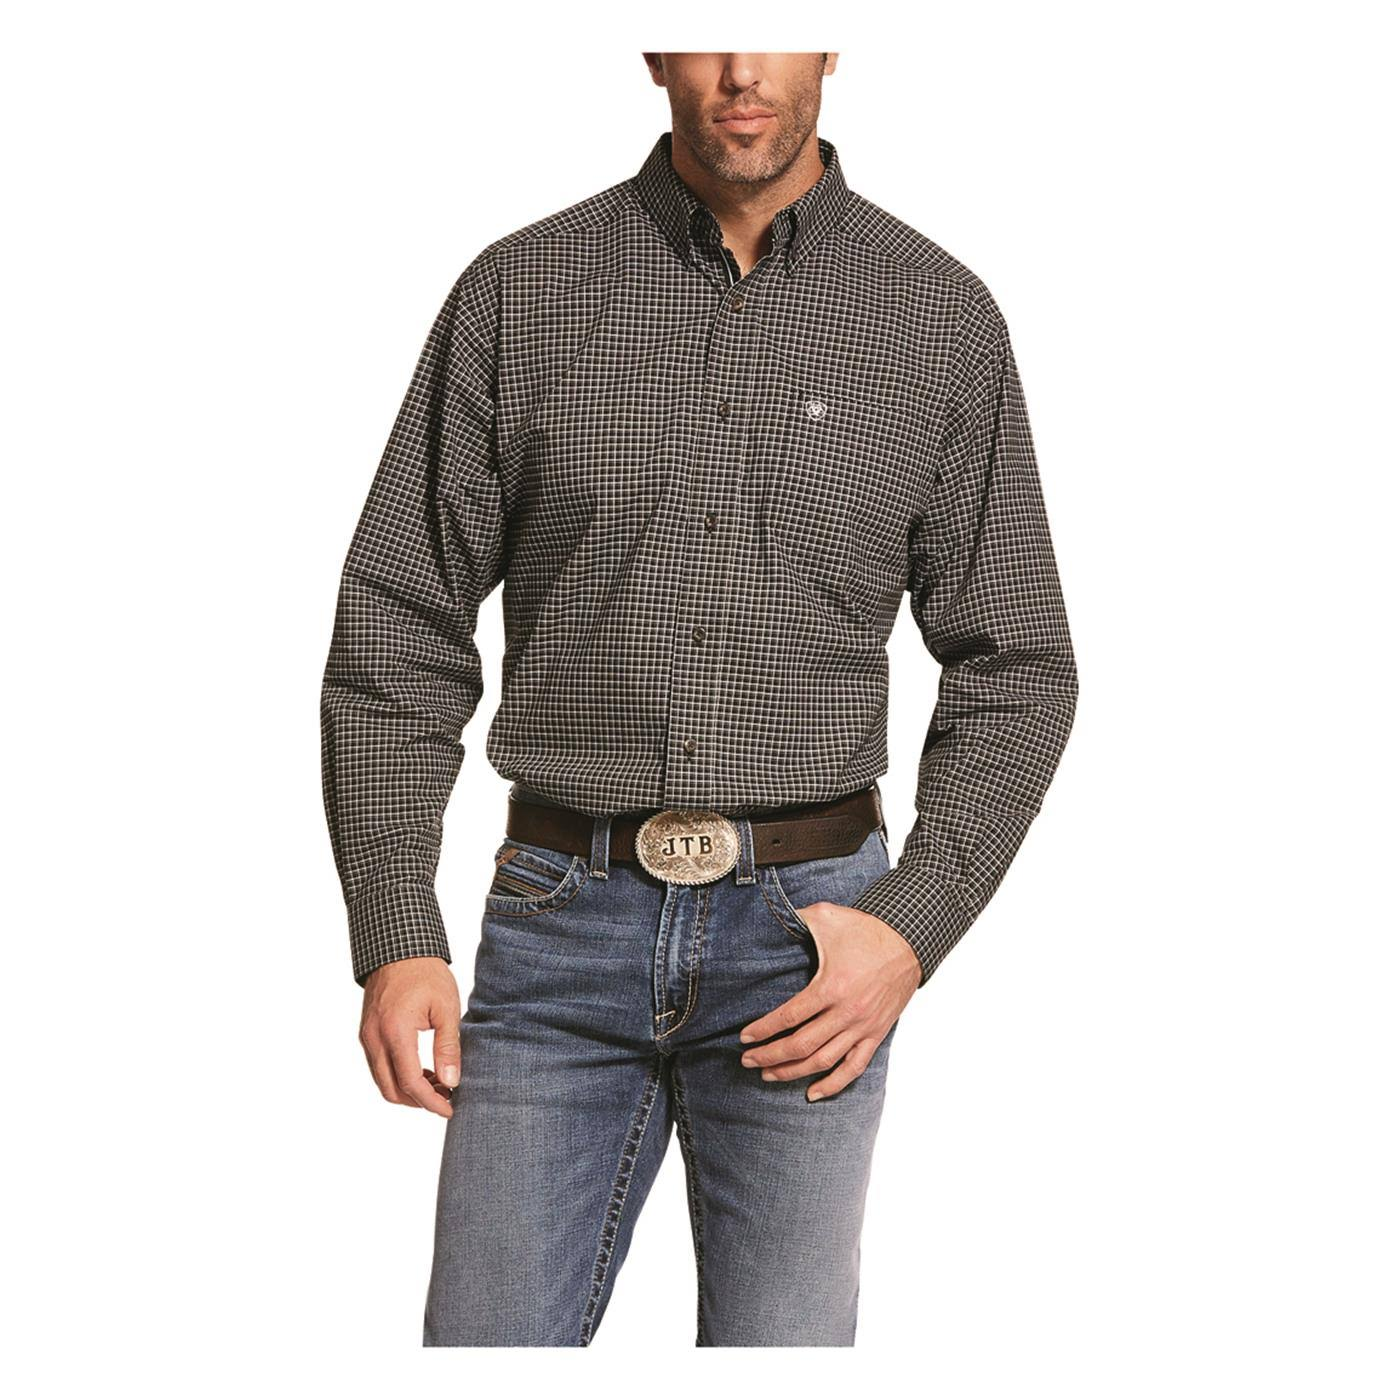 Ariat Men's Pro Series Dain Stretch Classic Fit Long Sleeve Shirt, Size: Large, Black